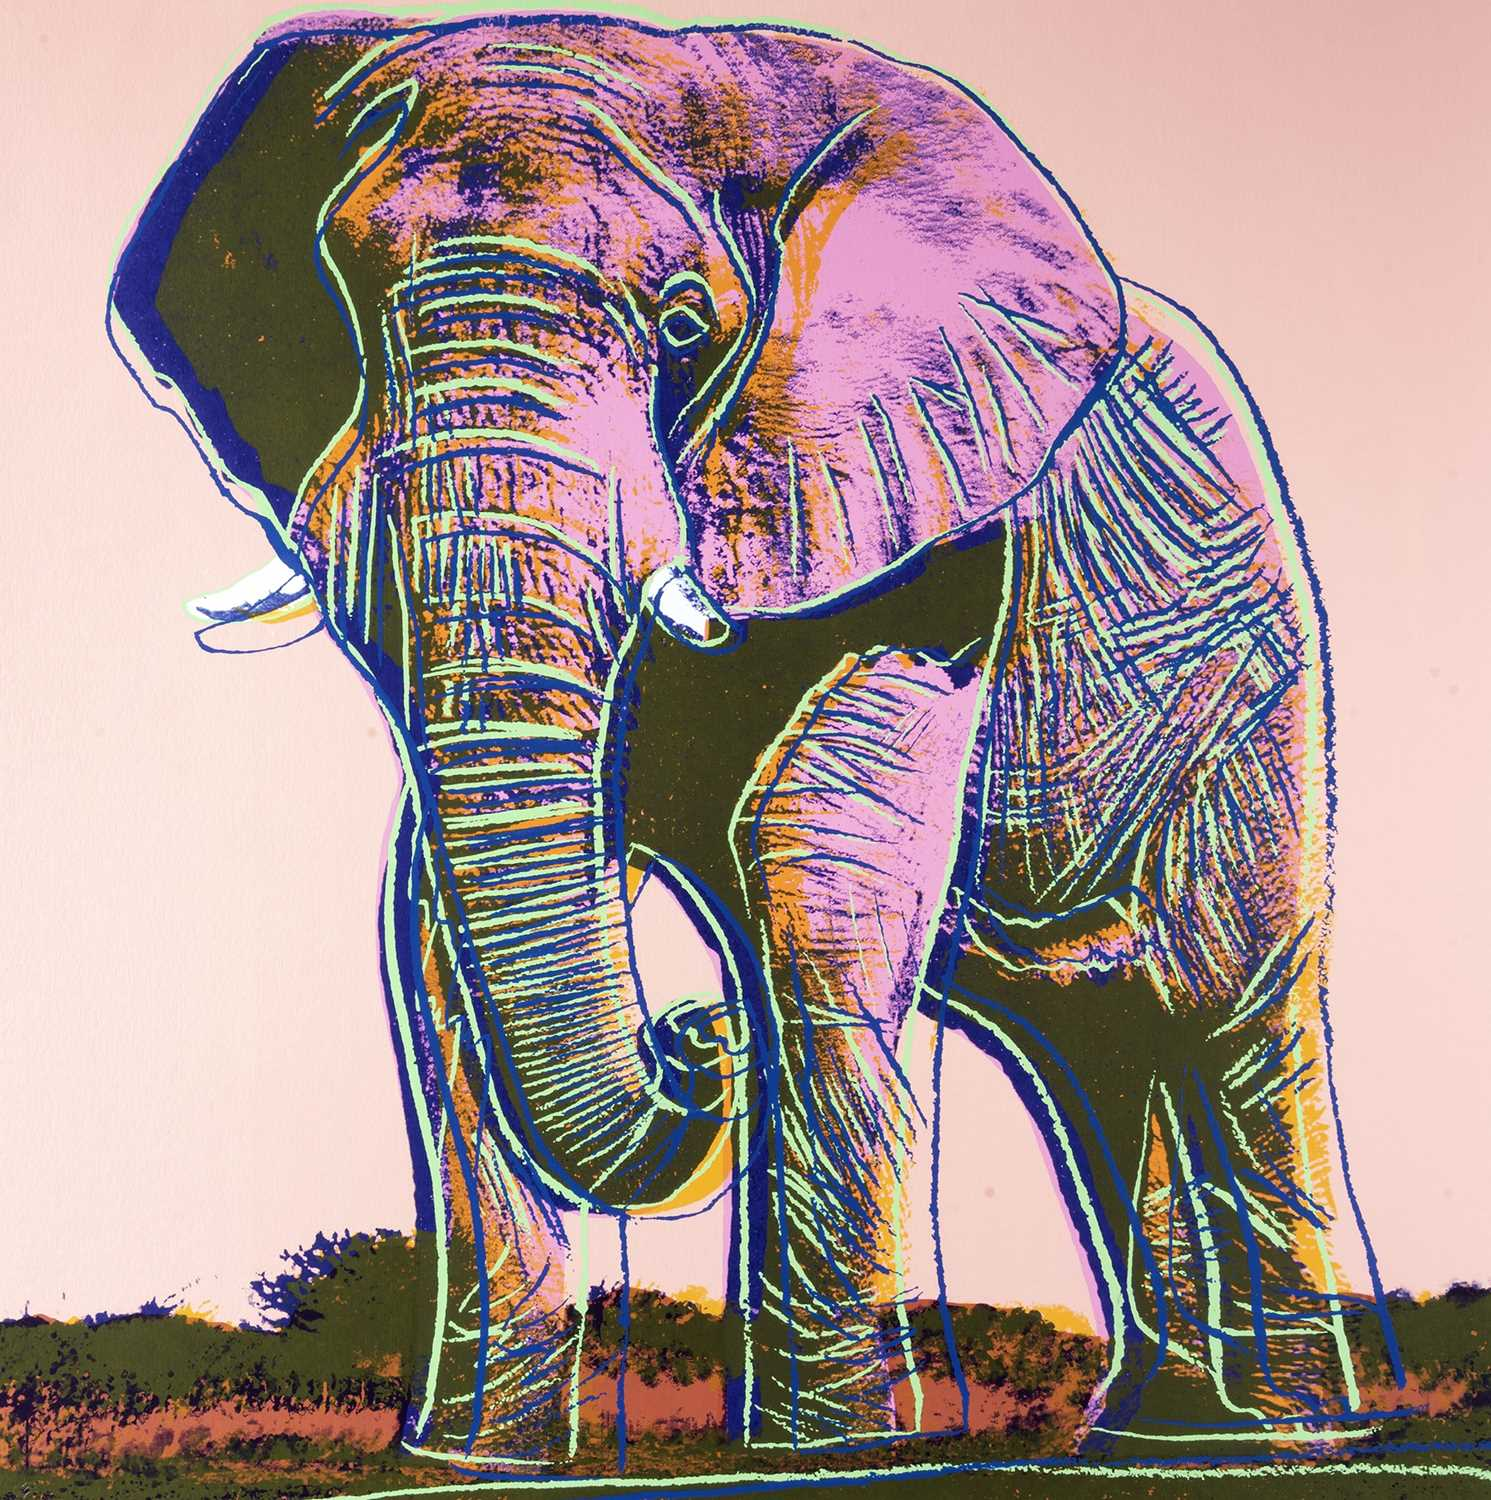 Lot 4-Andy Warhol (American 1928-1987), 'Elephant, from Endangered Species', 1983